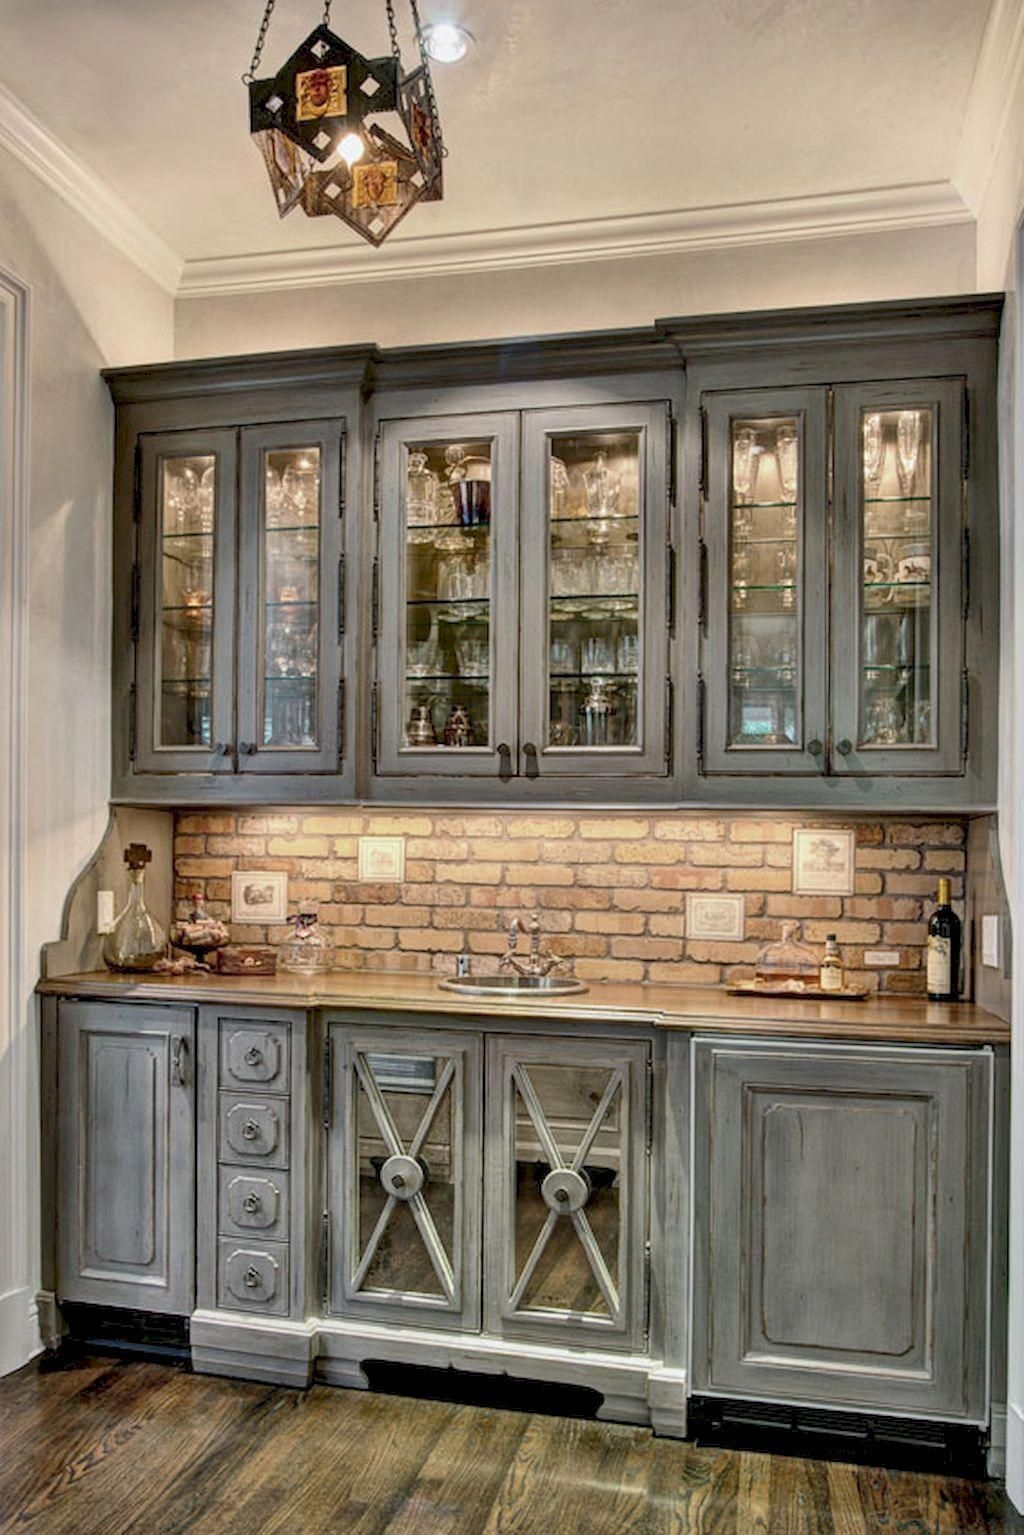 25 ways to style grey kitchen cabinets antique kitchen cabinets farmhouse style kitchen on farmhouse kitchen cabinets id=85100